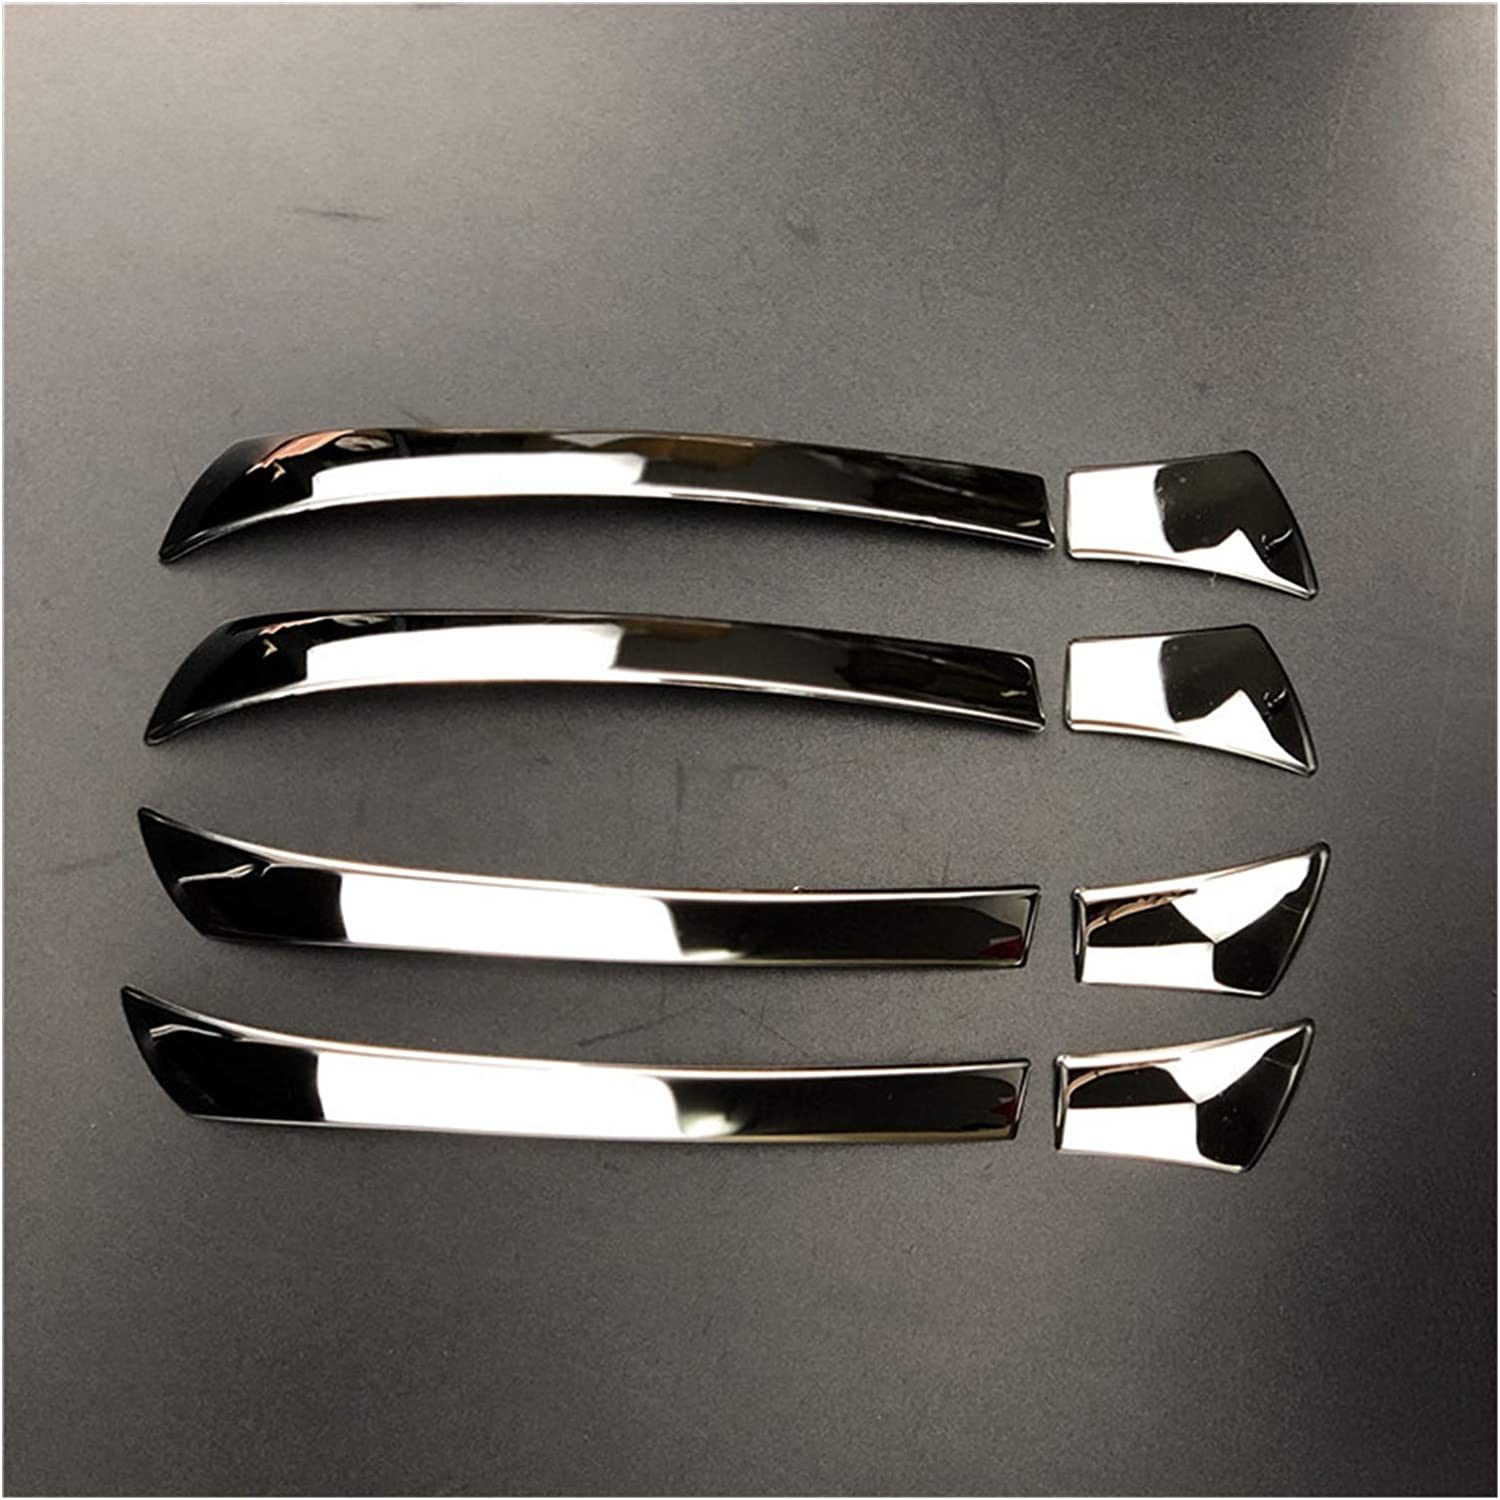 Car-styling Stainless Steel Weekly update Door Handles Dec. Special Ranking TOP19 Stic Cover